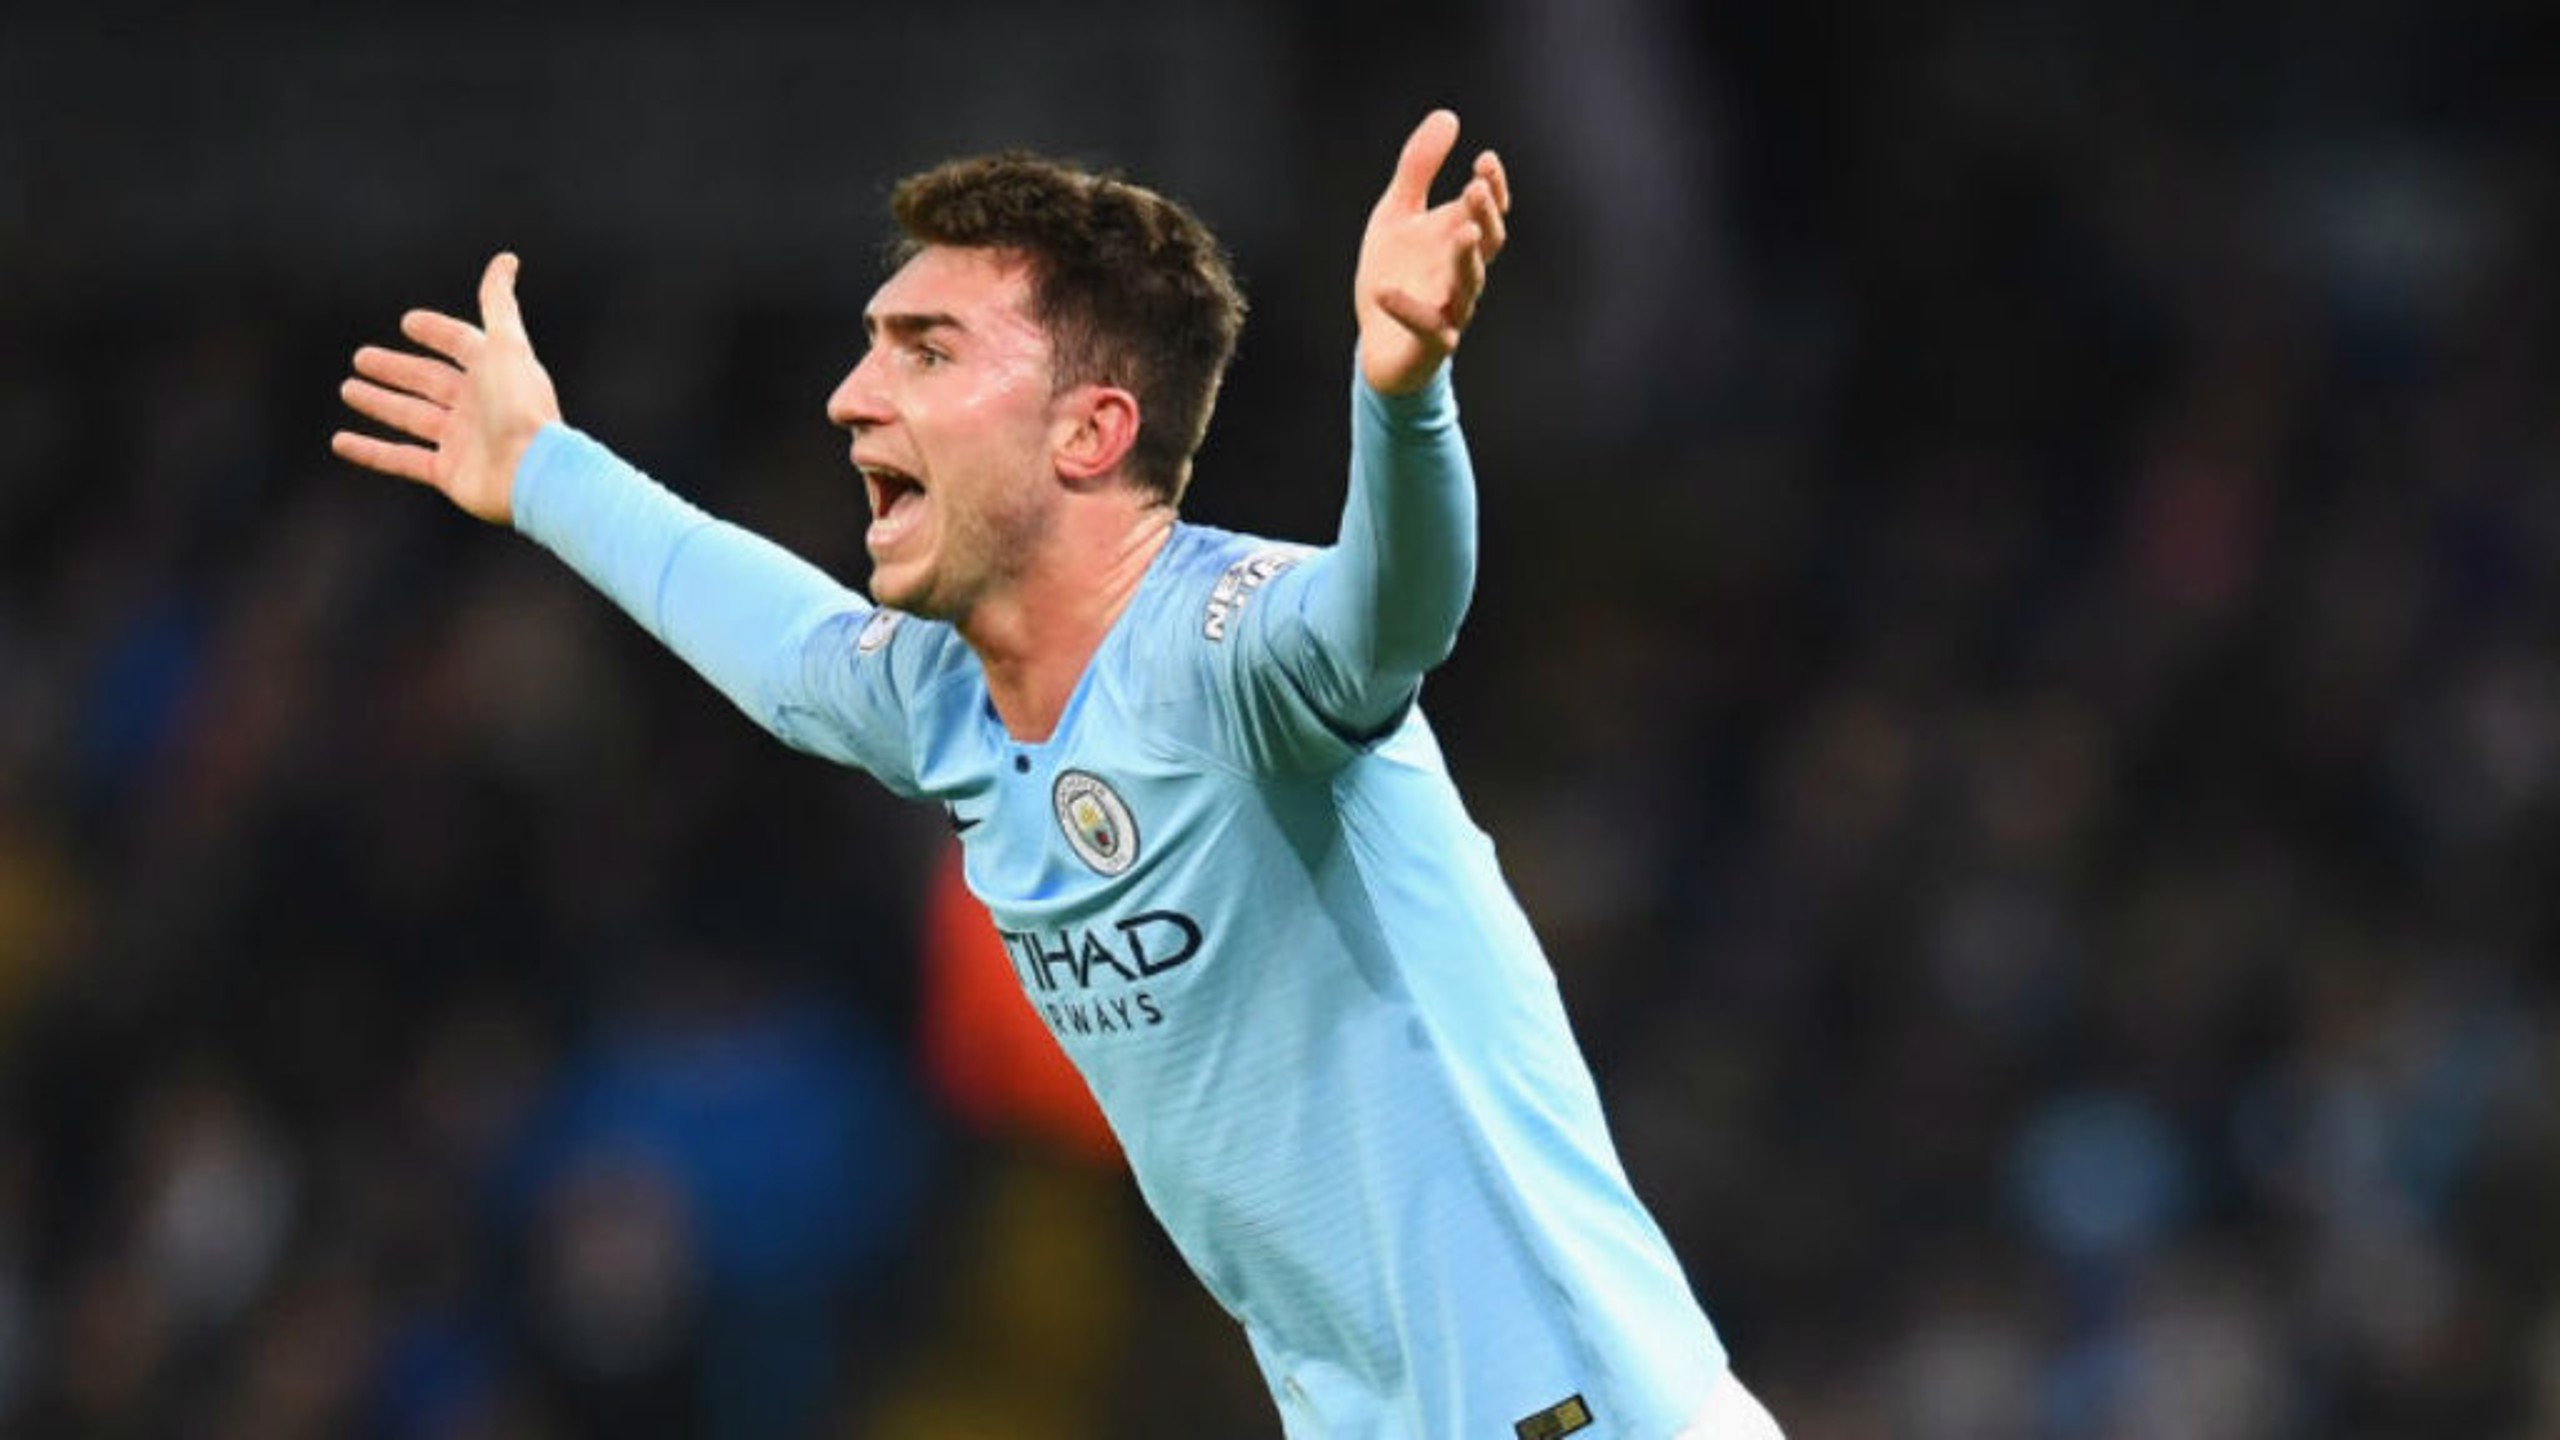 ALL SQUARE: Aymeric Laporte vents frustration after equaliser.